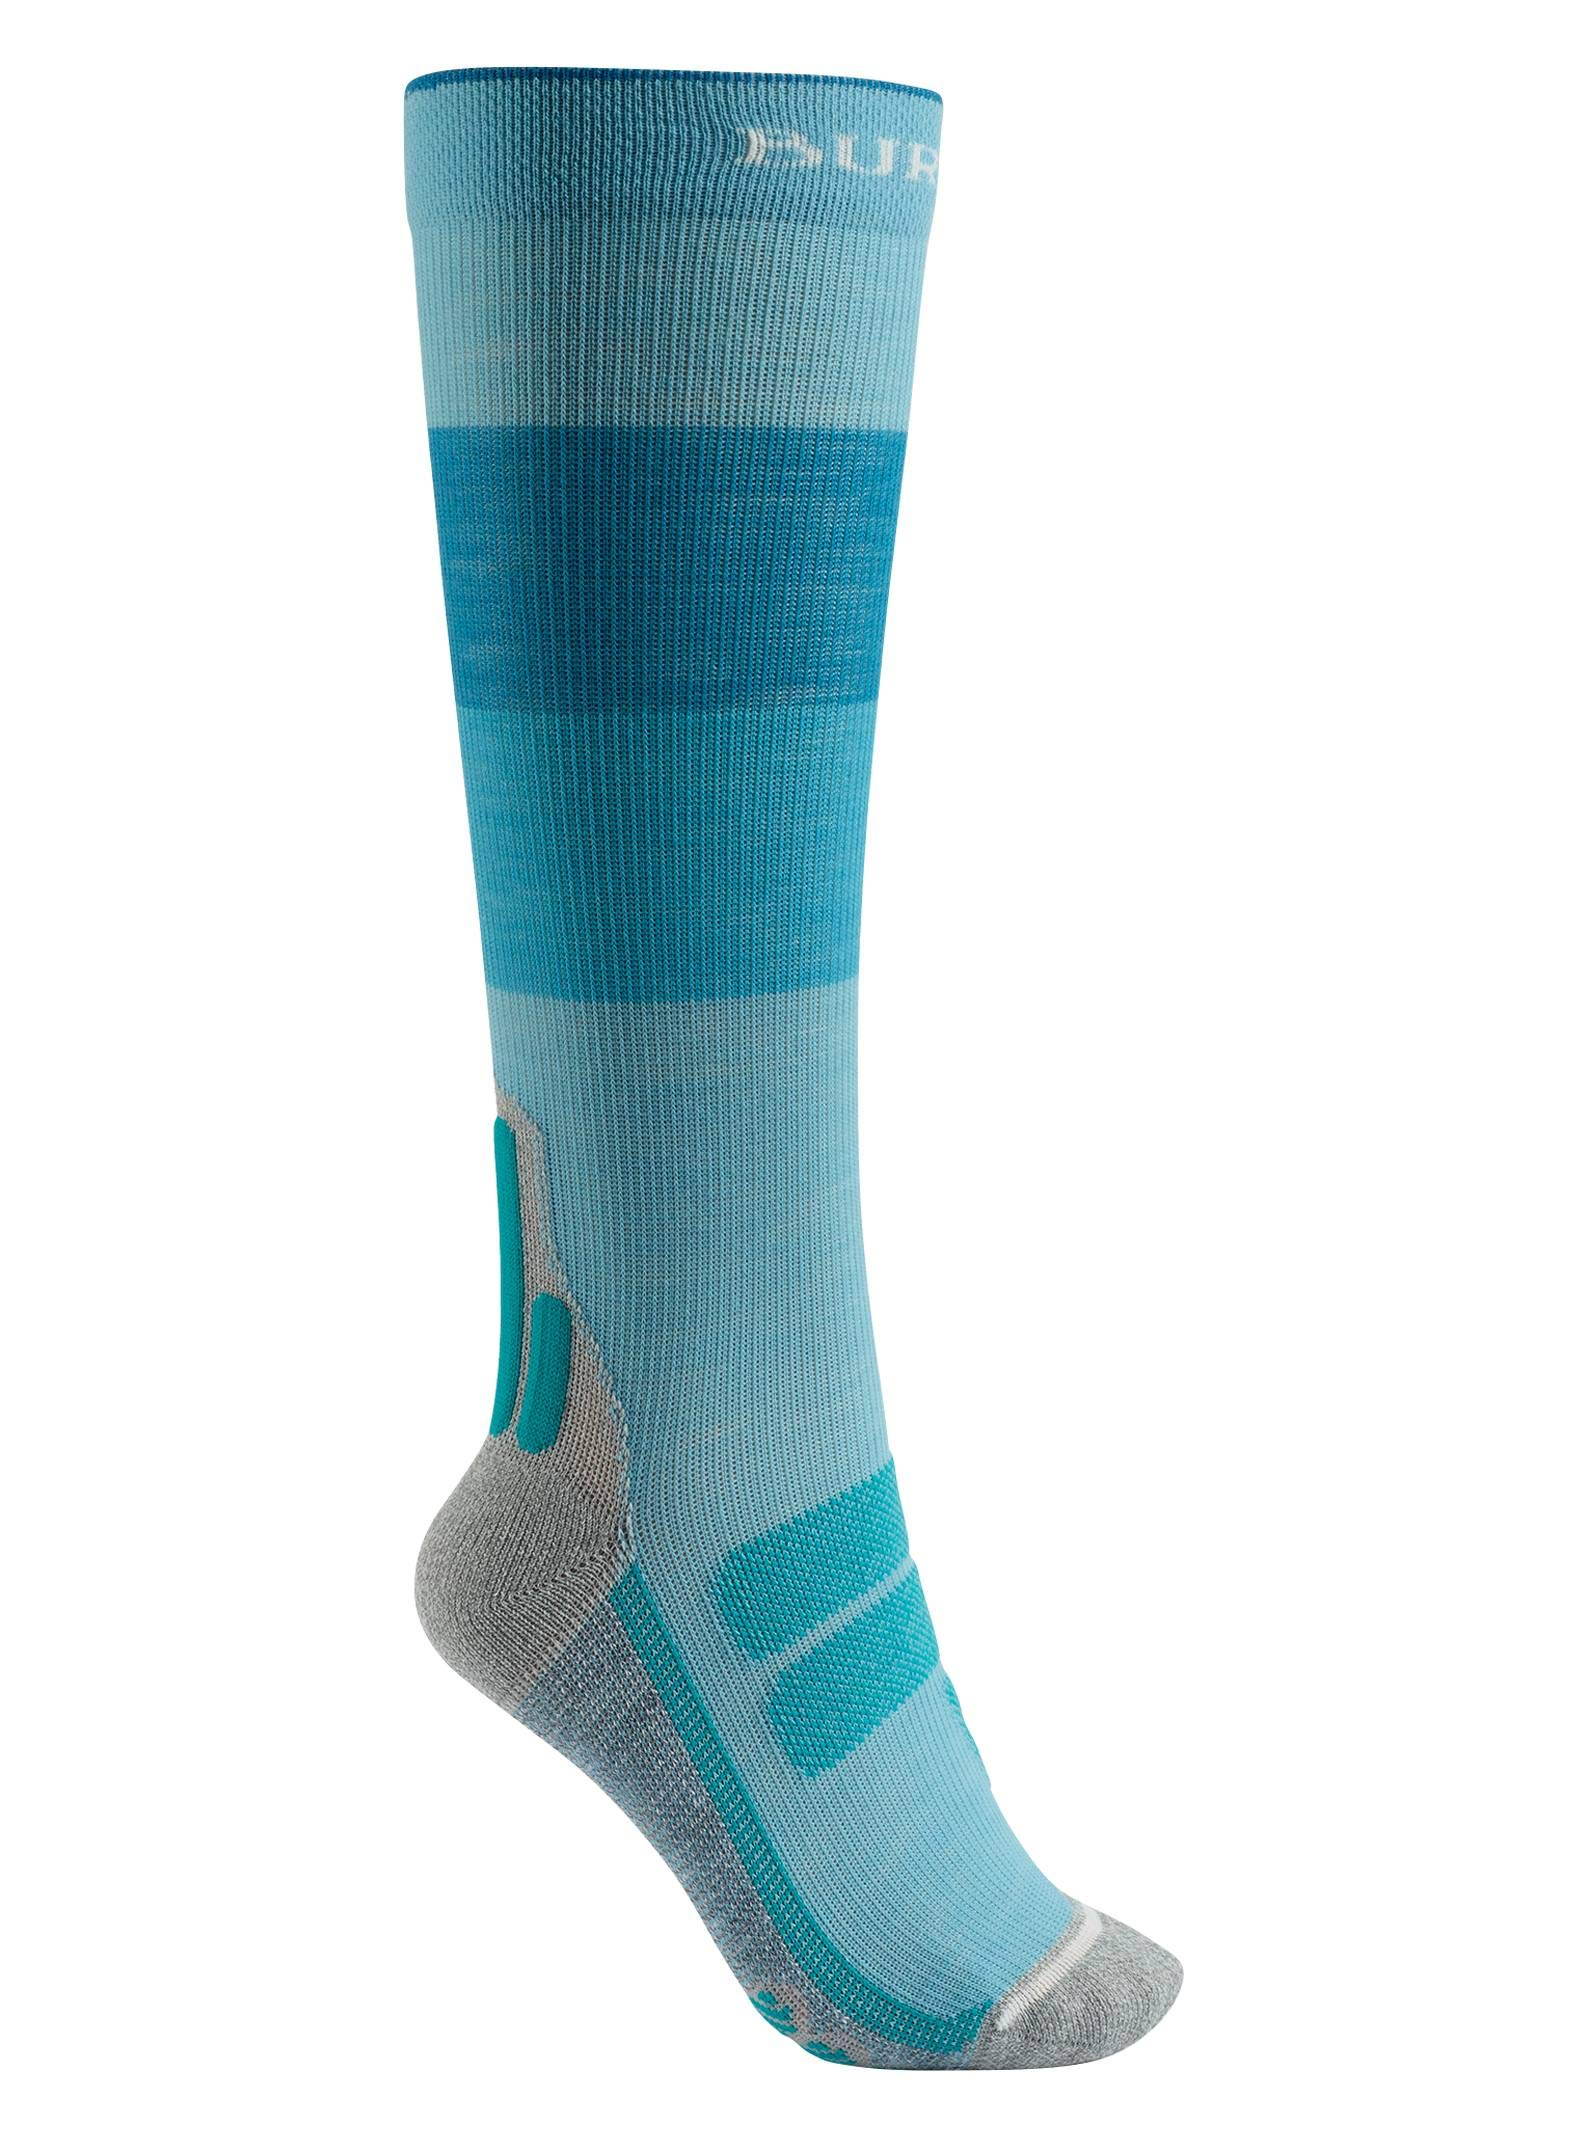 Burton Women's Performance + Ultralight Compression Sock, Tahoe Block, Small by Burton